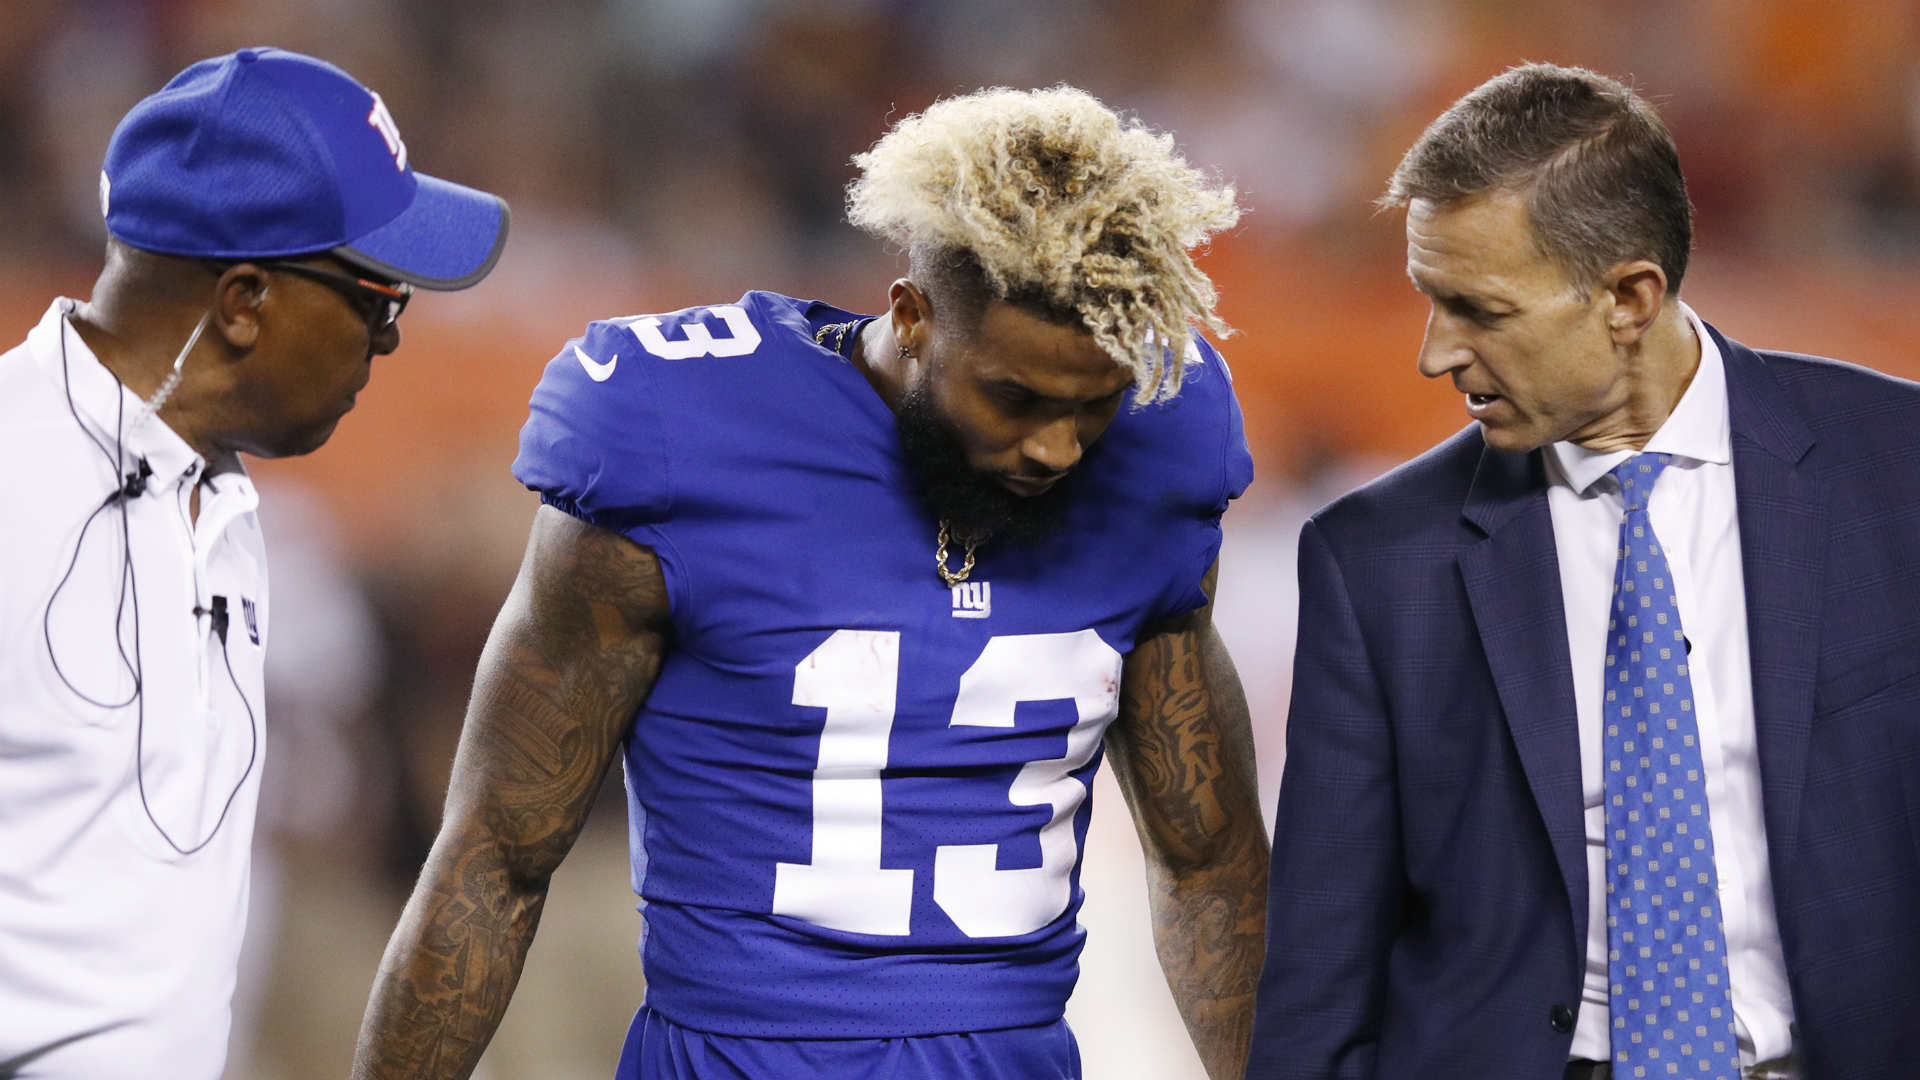 Ankle injury could sideline Giants' Odell Beckham Jr. for opener vs. Cowboys